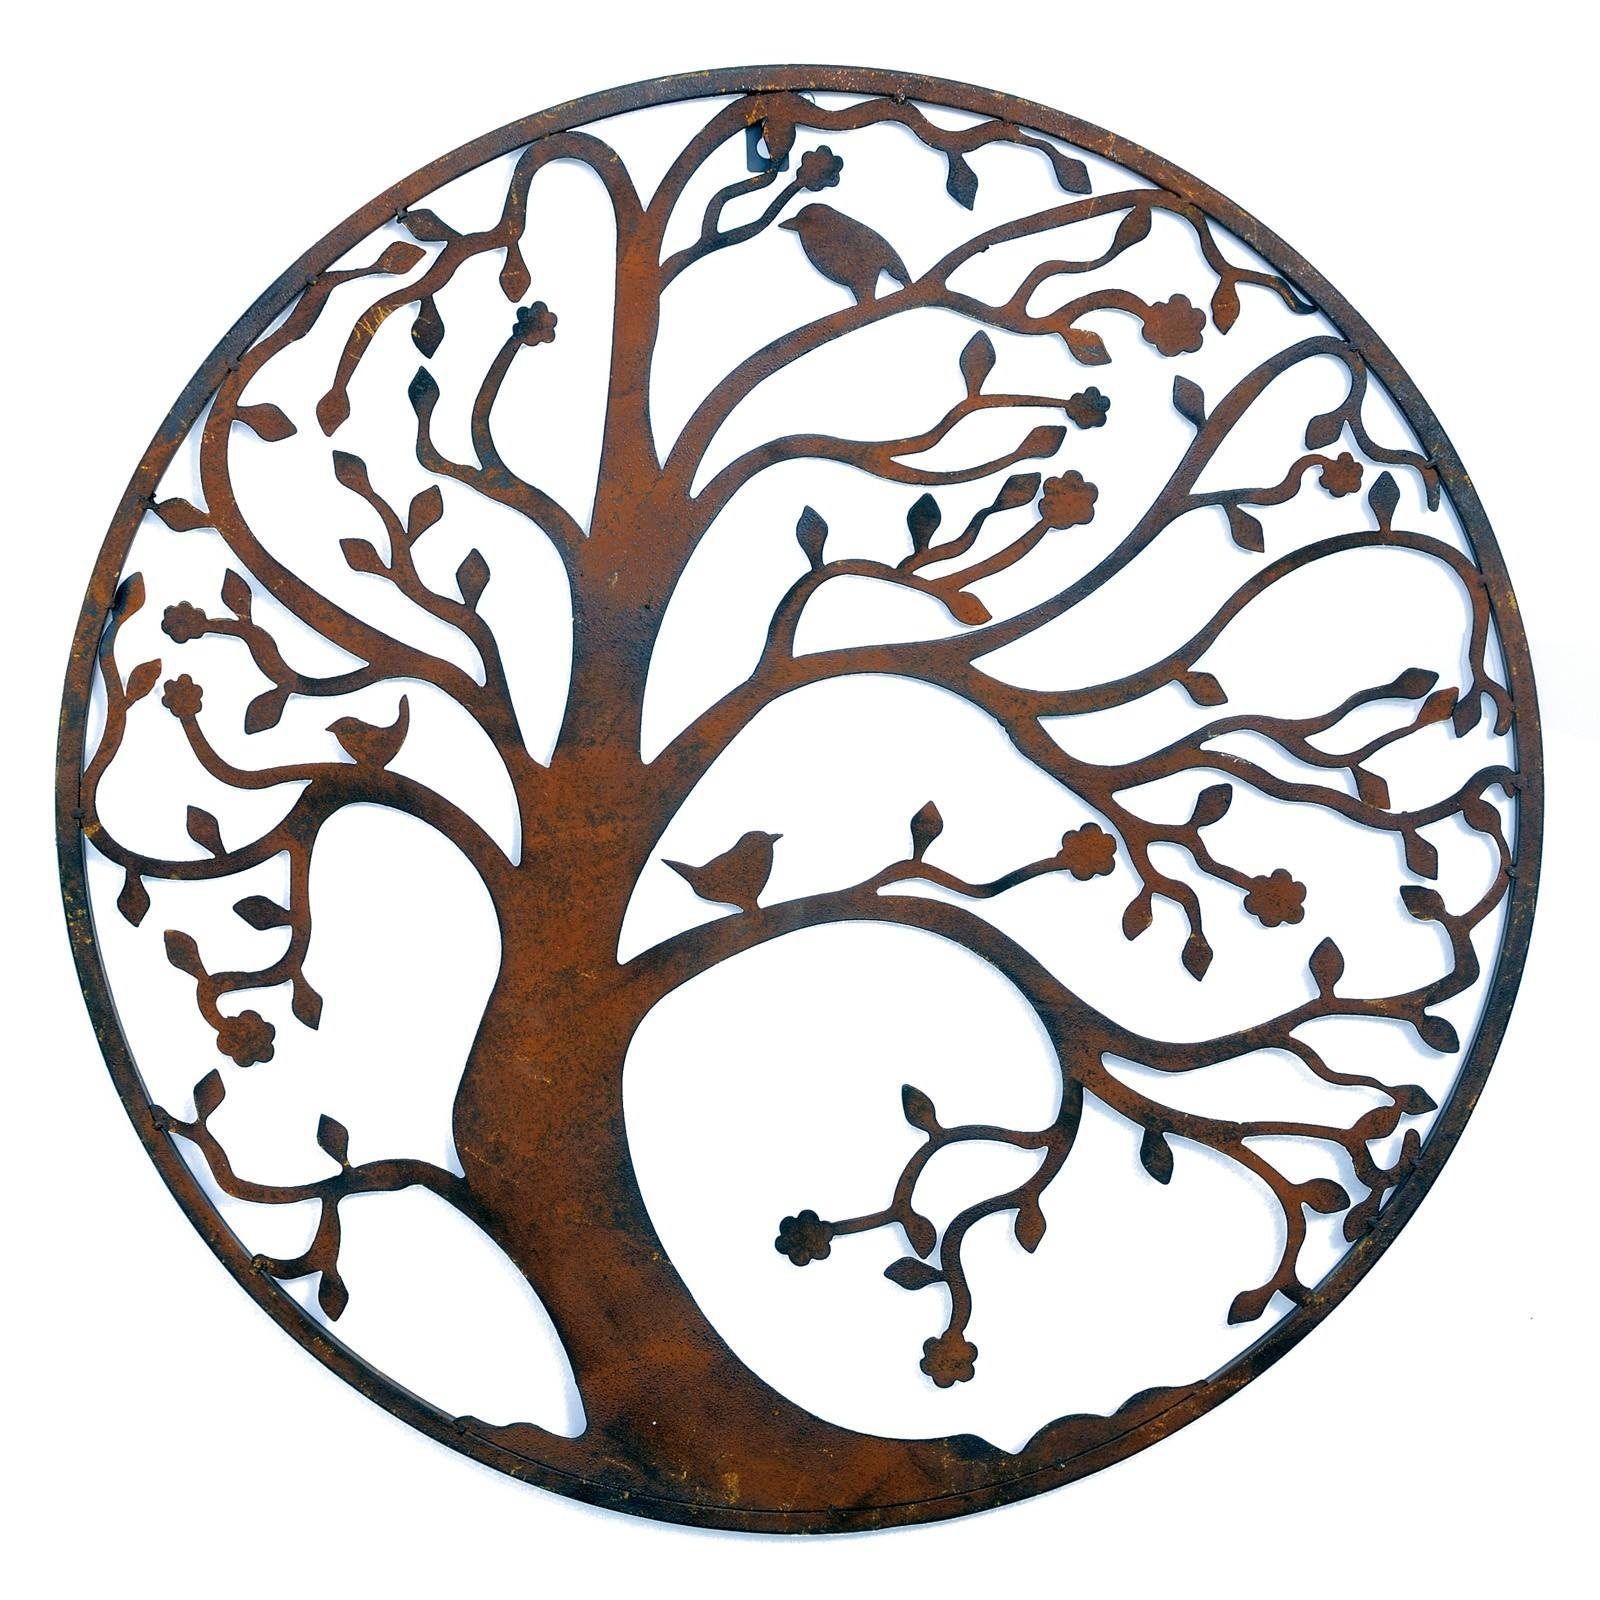 Wall Art Designs: Rusted Classic Design Tree Leaf Branch Birds With Best And Newest Metal Wall Art Trees And Leaves (View 20 of 20)